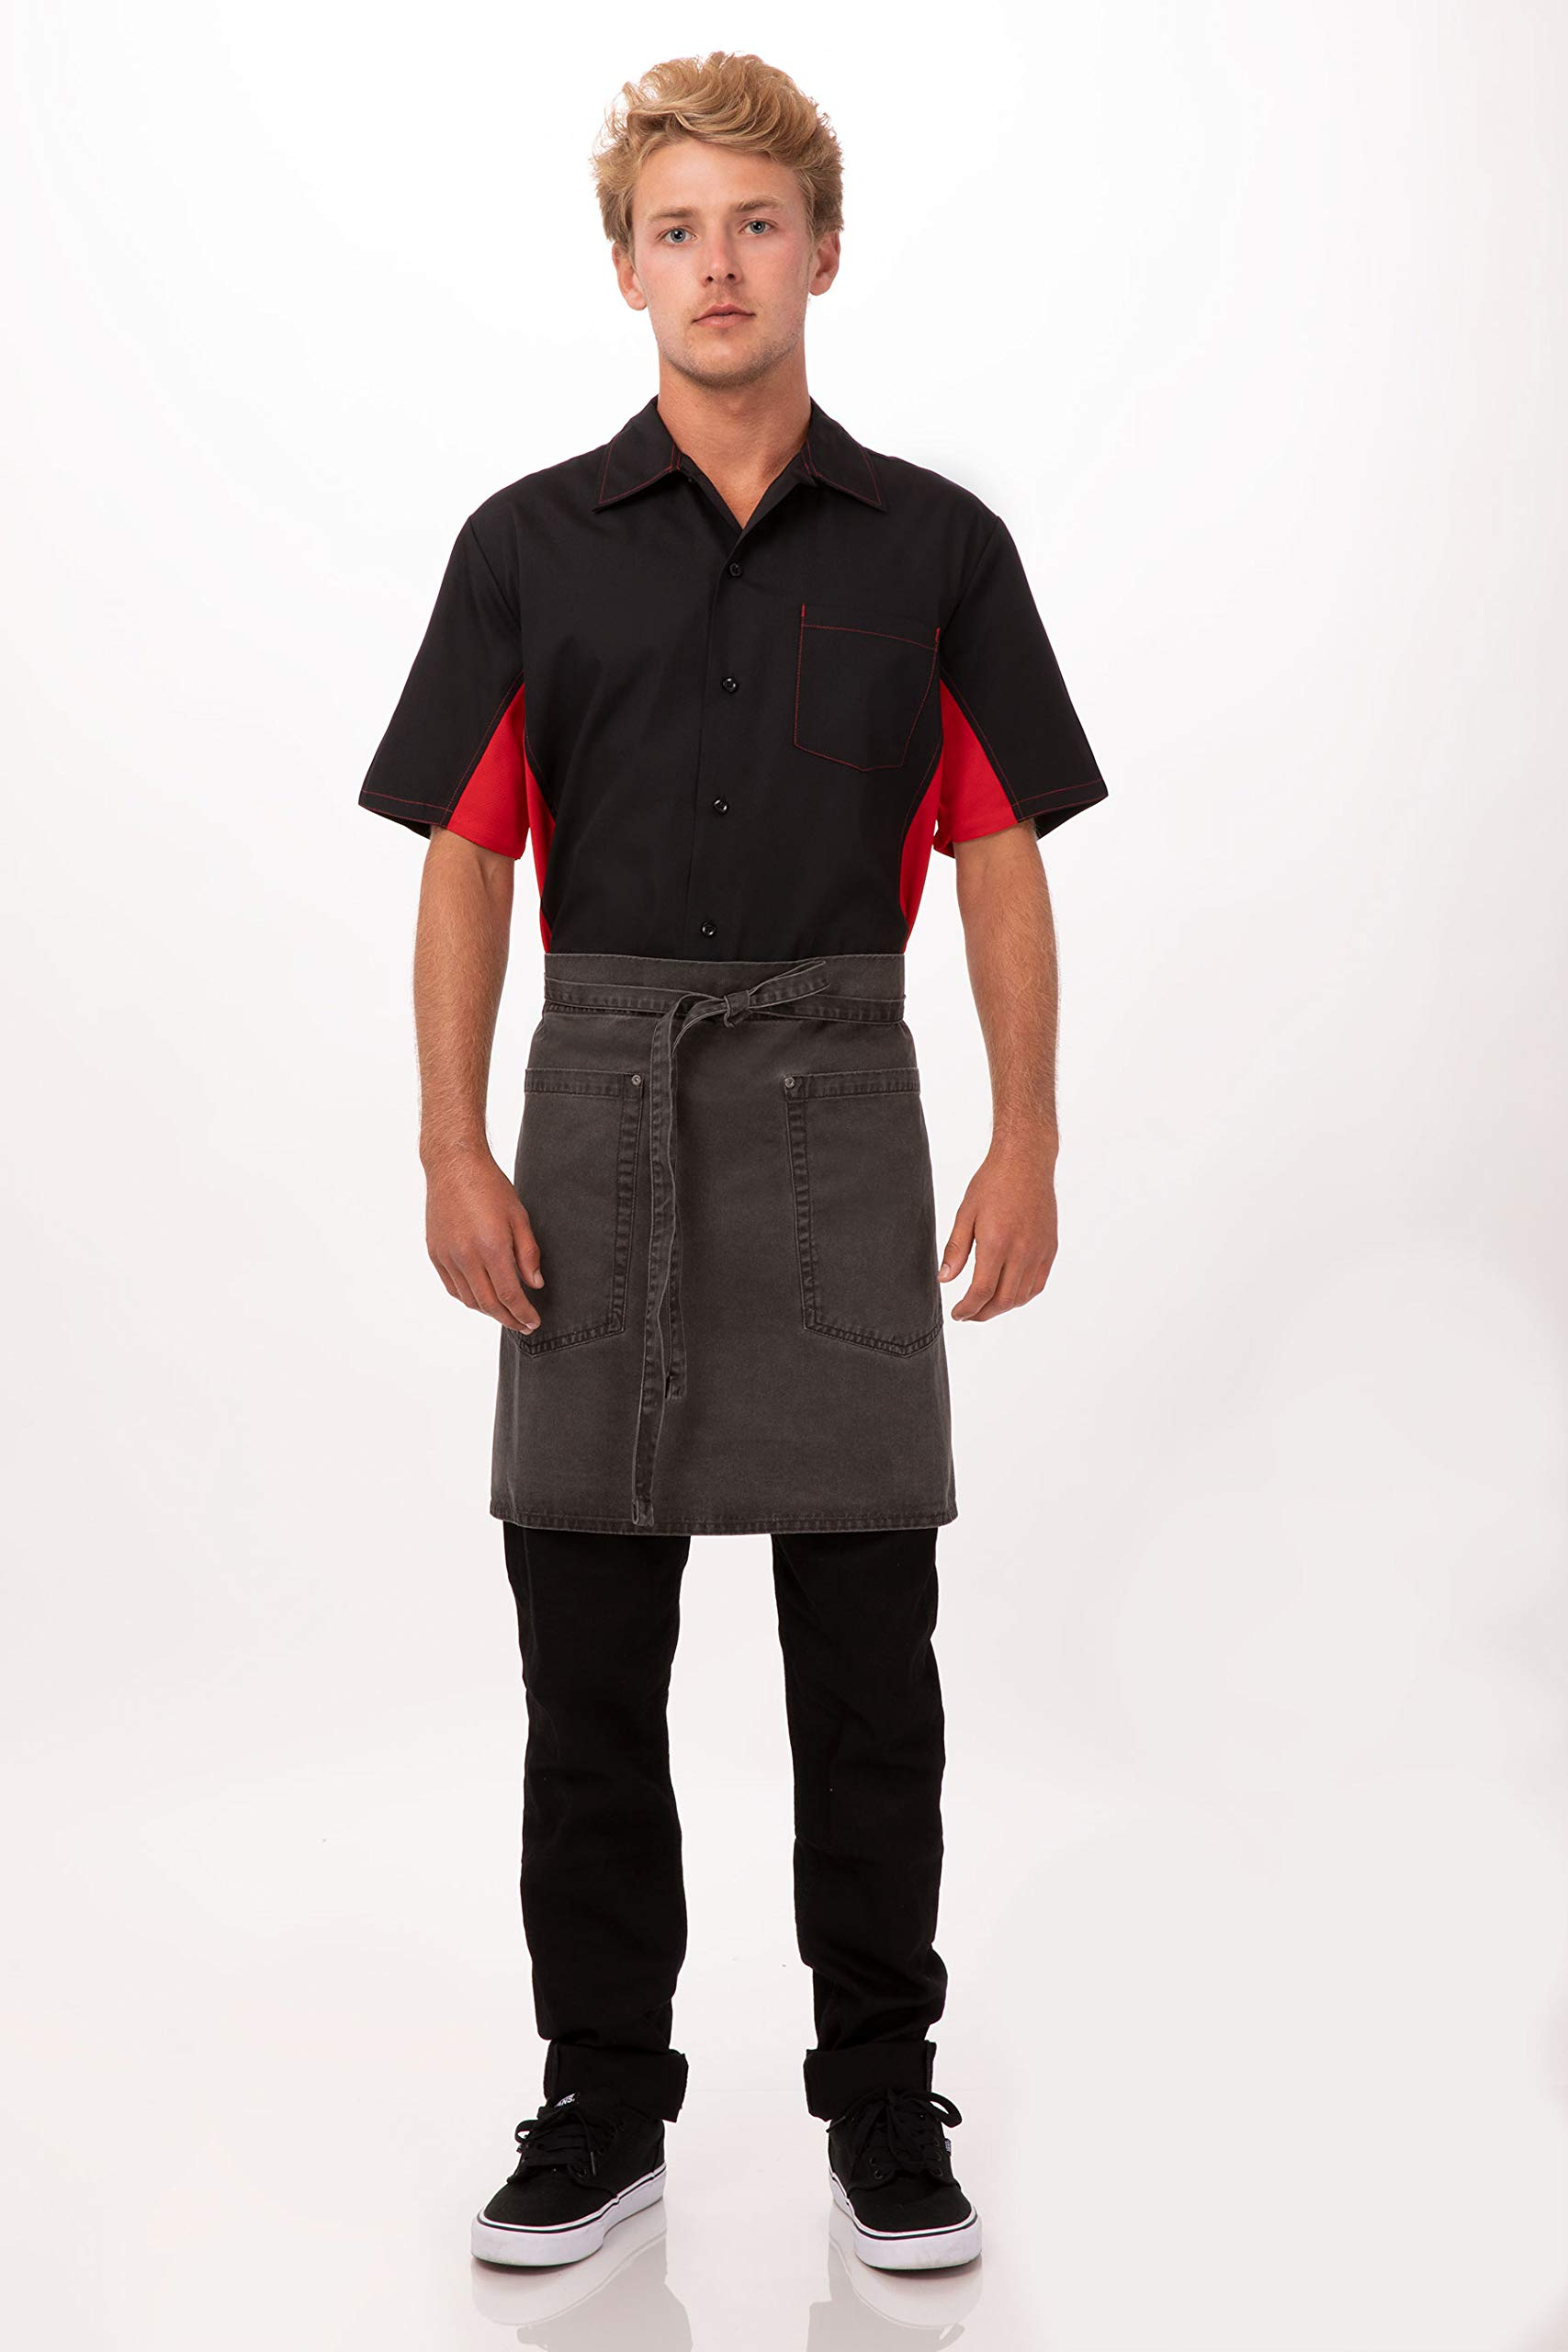 Chef Works Unisex Dorset Half Bistro Apron, Pewter, One Size by Chef Works